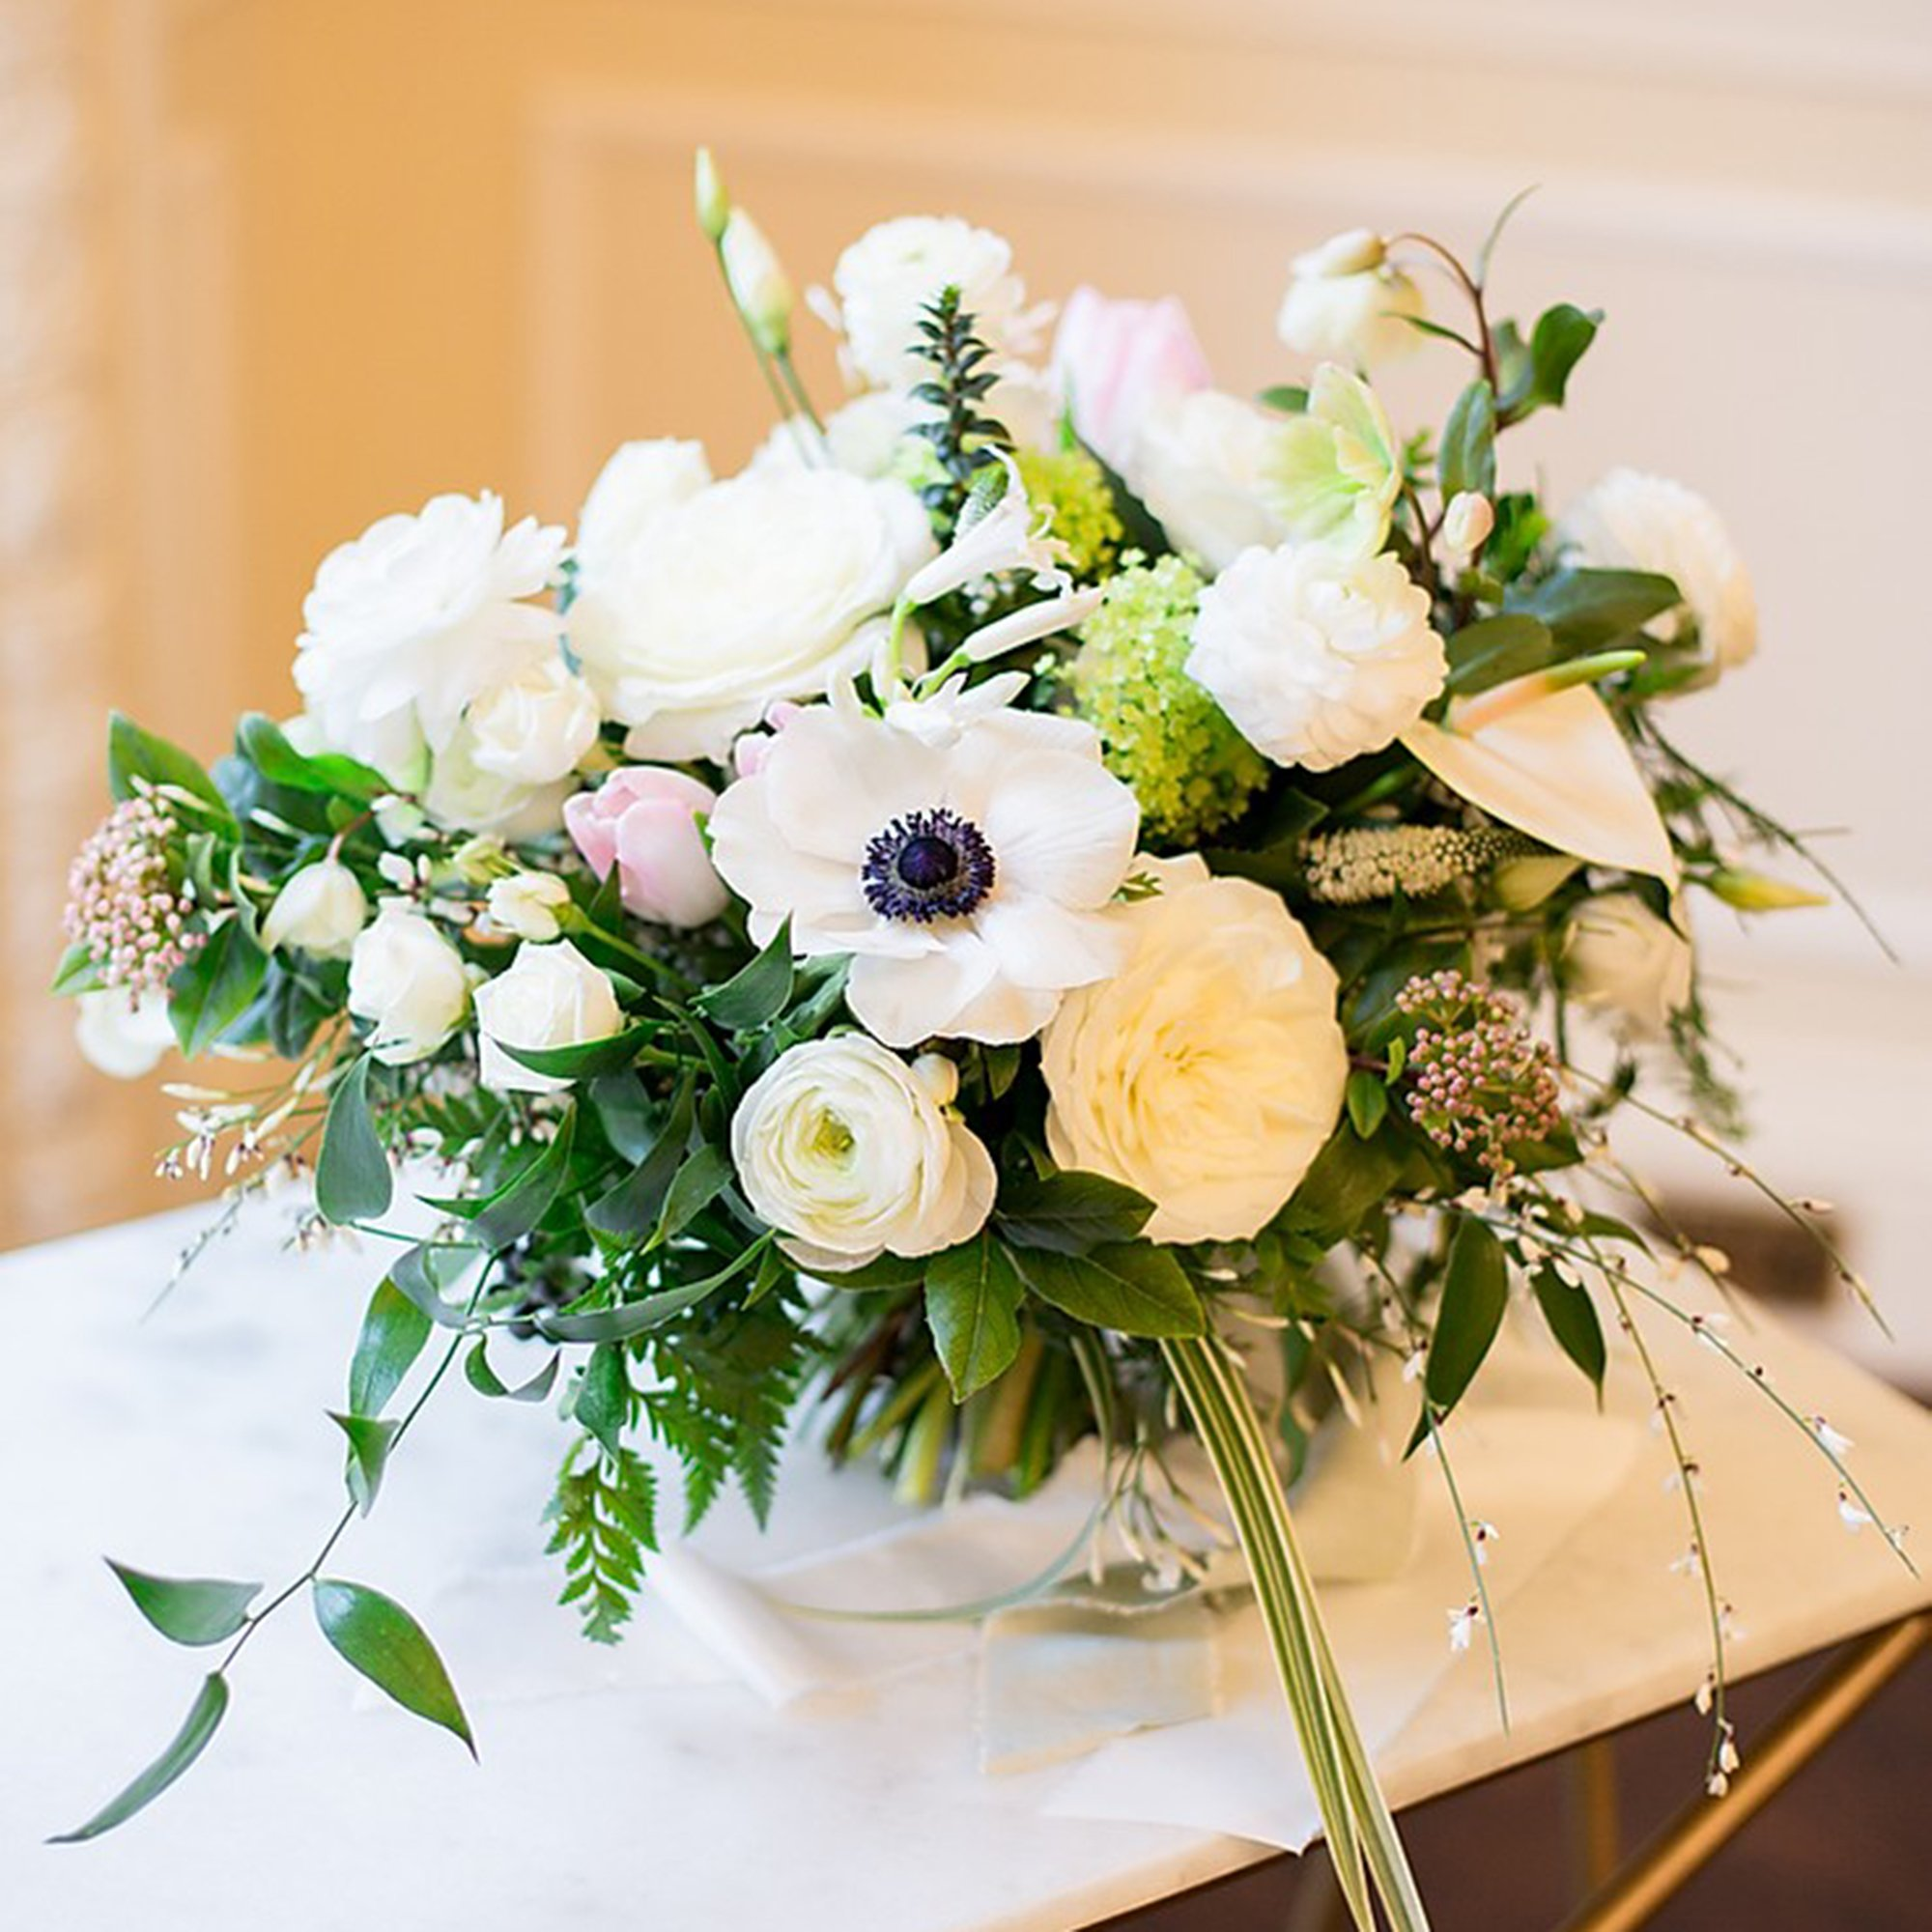 Johanna Pedrick Flowers - Booking a Wedding Florist, Flamboyant Invites